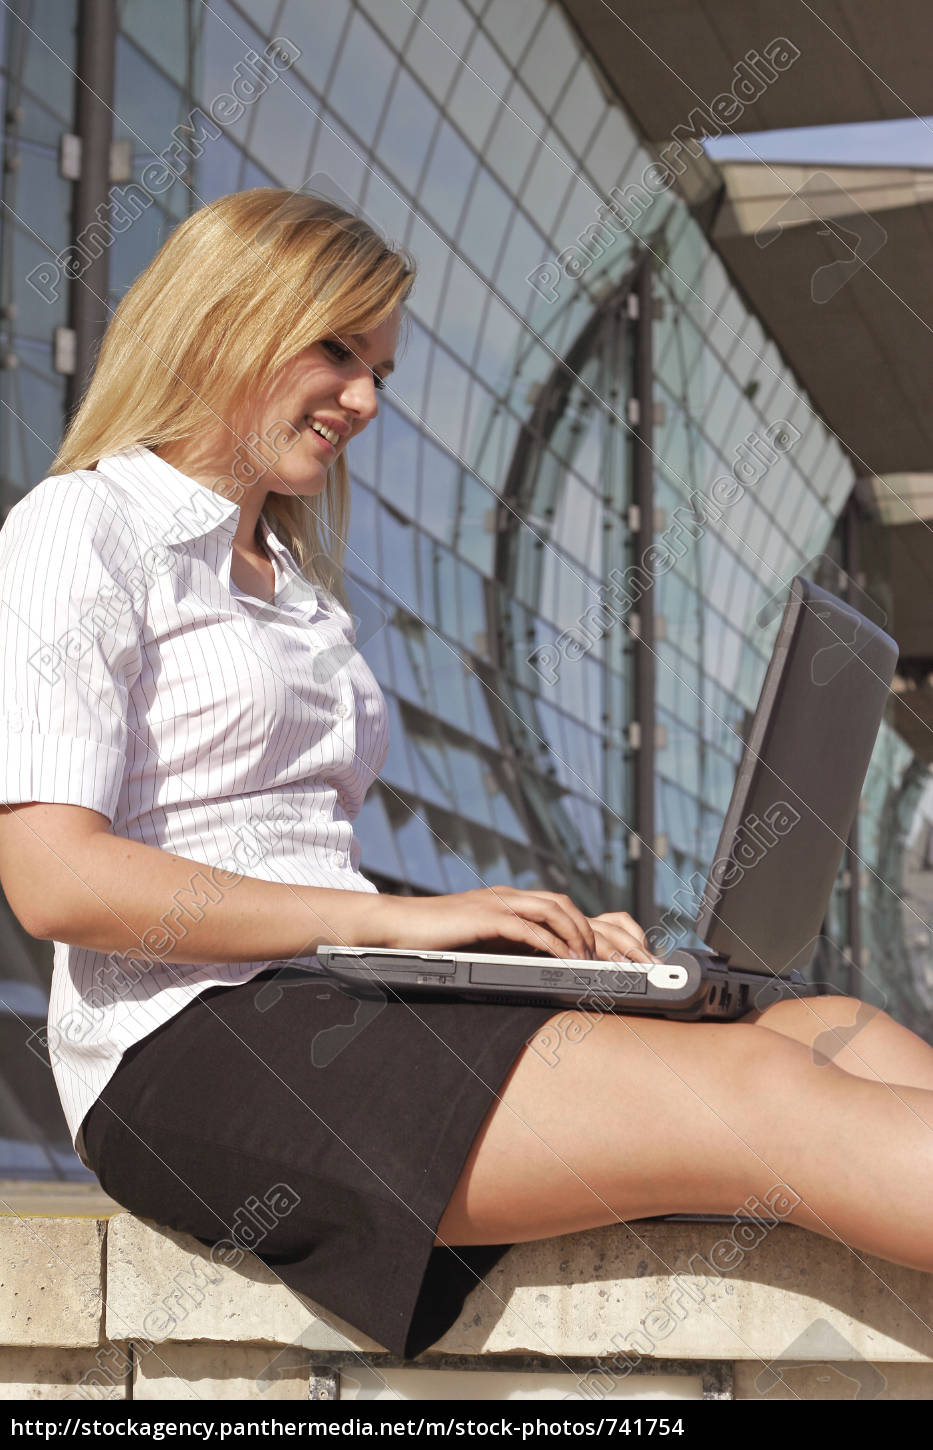 young, woman, sitting, outside, with, laptop - 741754